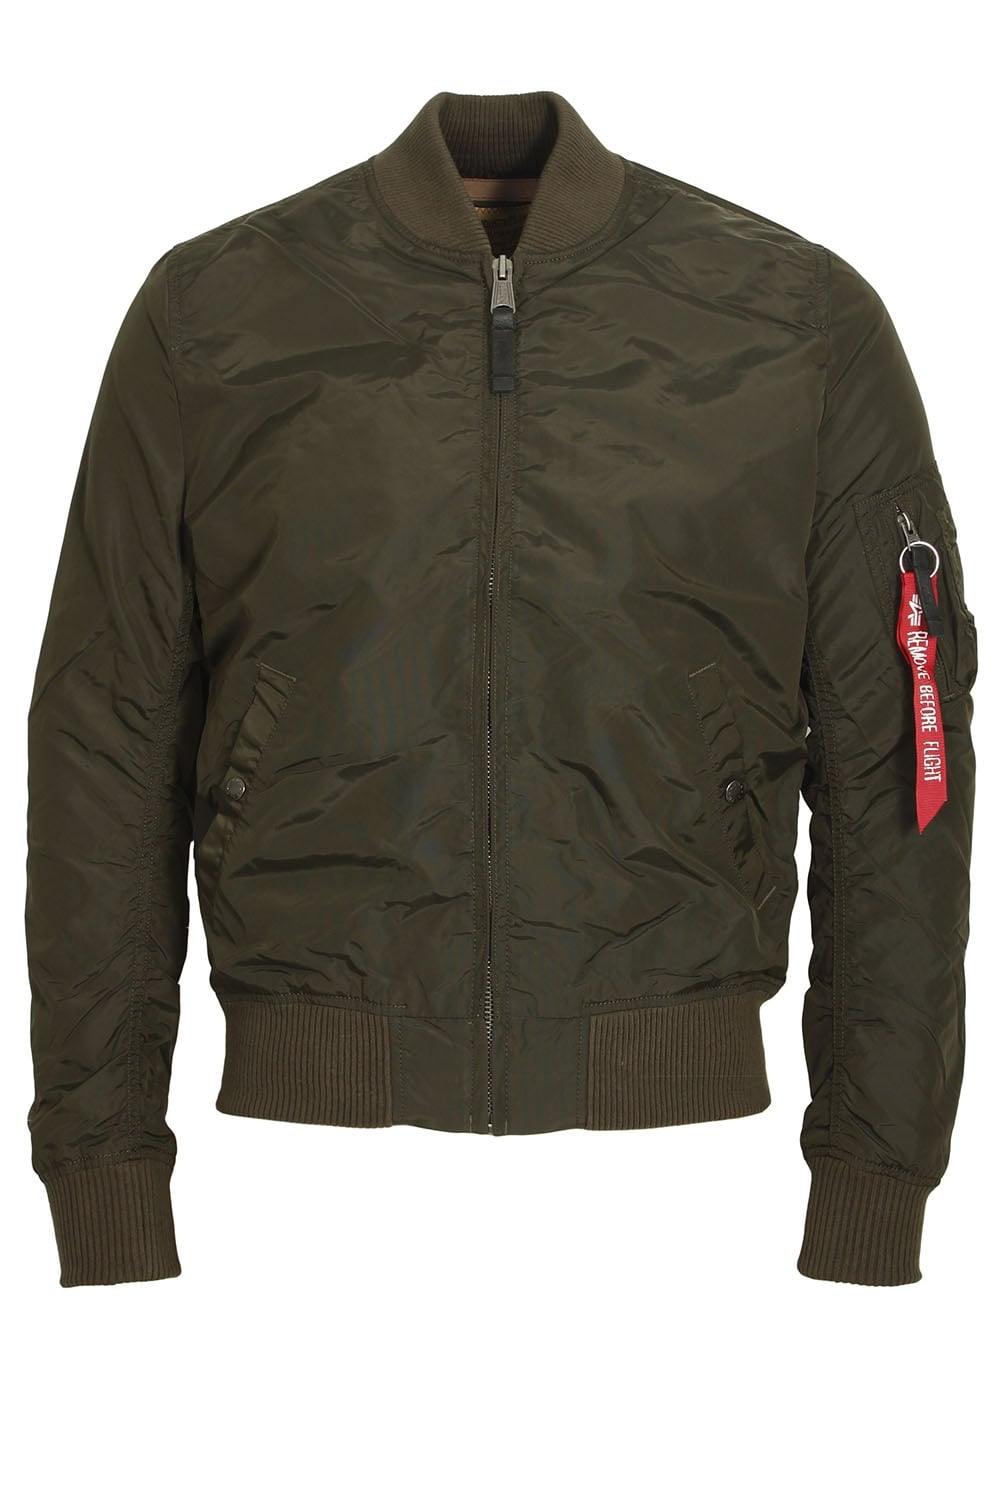 f15446506 MA-1 TT Bomber Jacket | Rep Grey